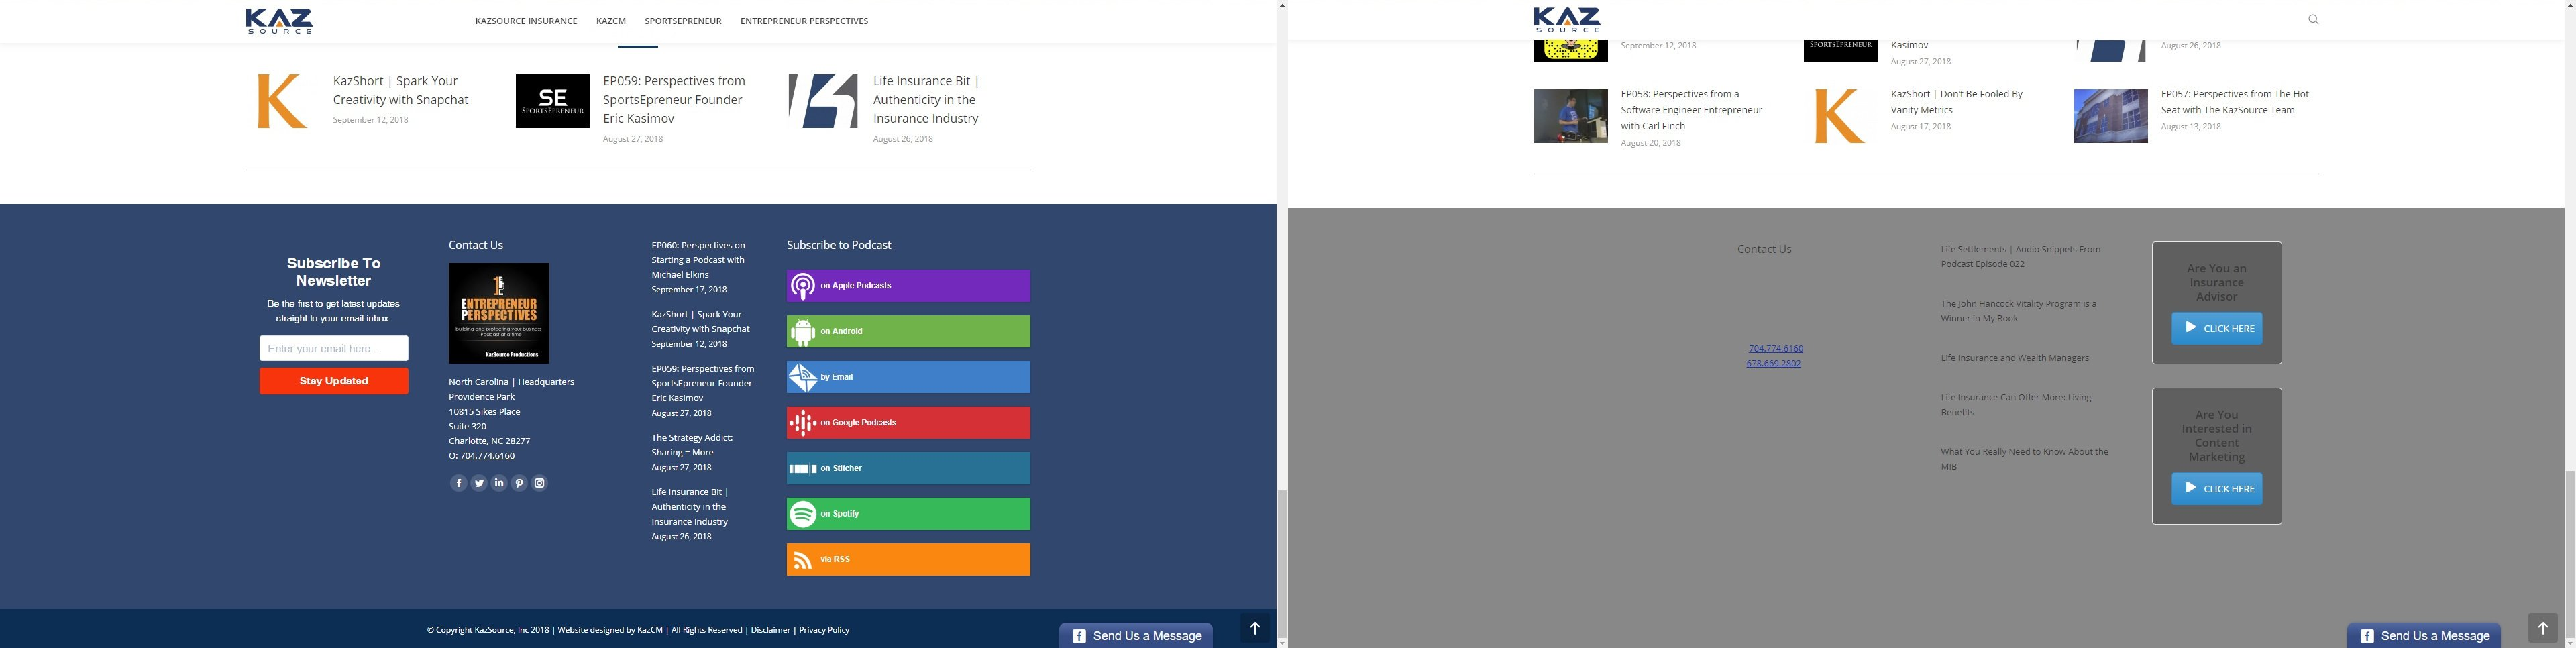 KazSource website footer. The image on the left is correct, the image on the right is our site with an error.